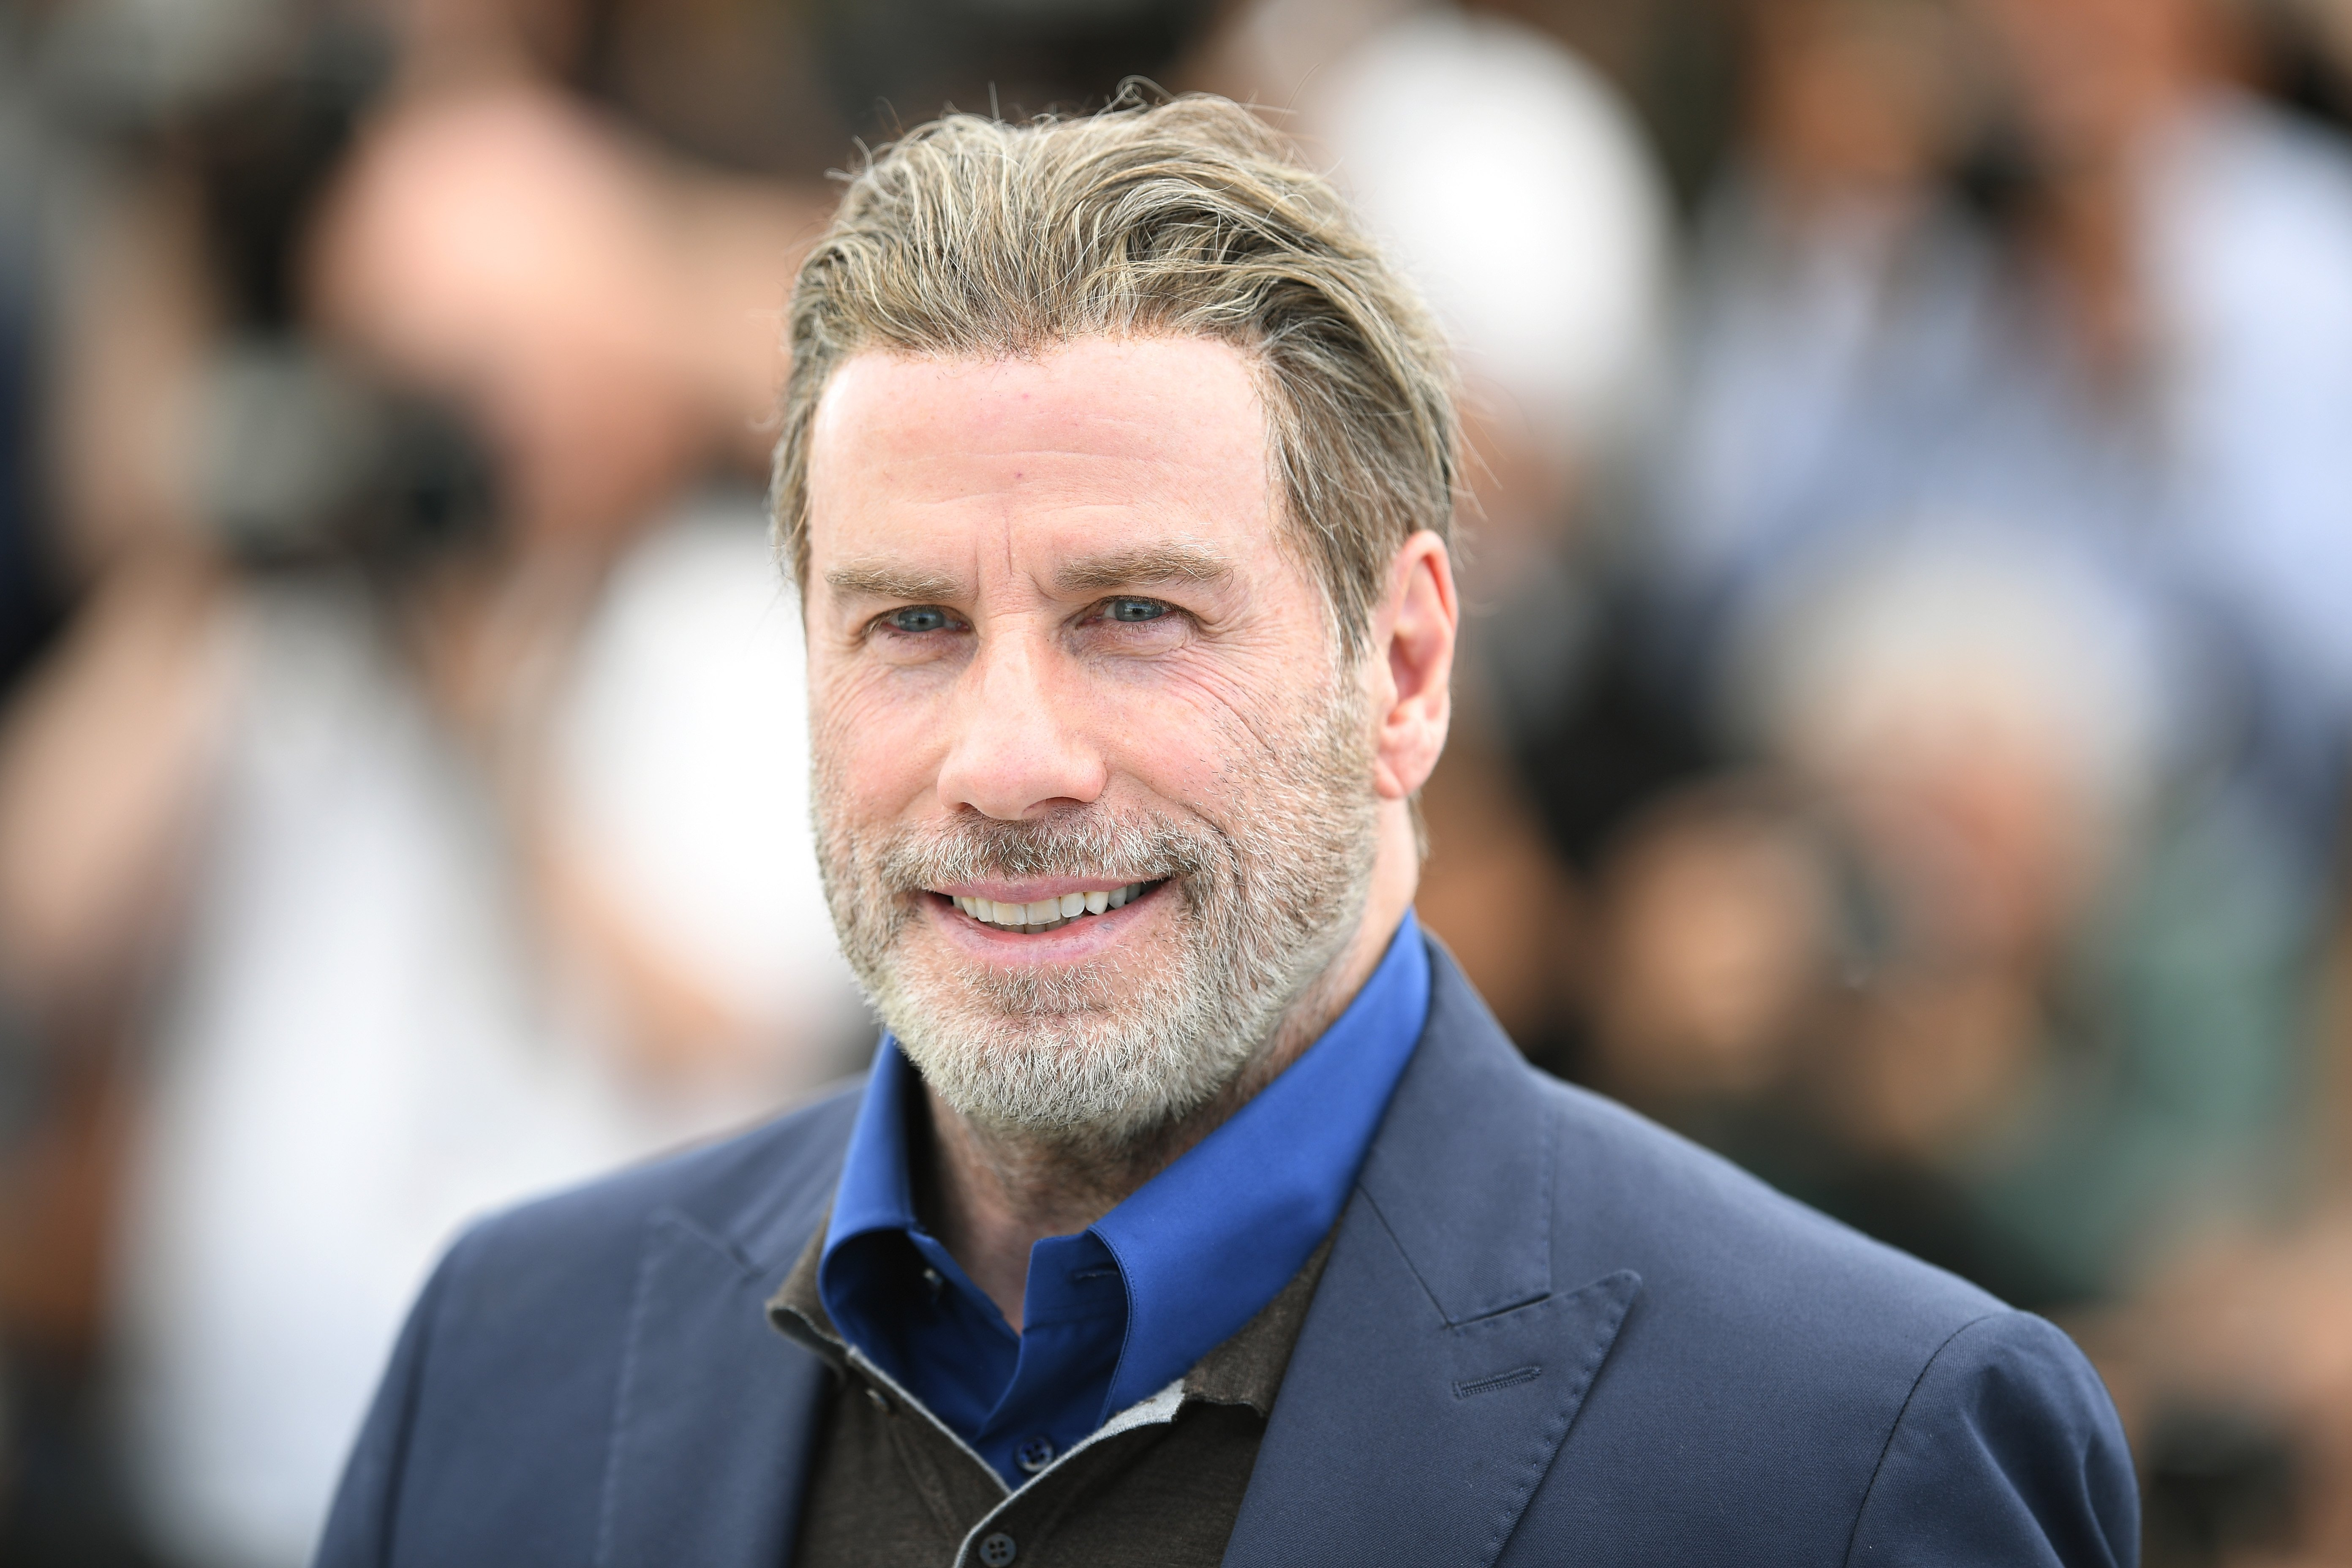 John Travolta at the 71st annual Cannes Film Festival at Palais des Festivals on May 15, 2018   Photo: Getty Images